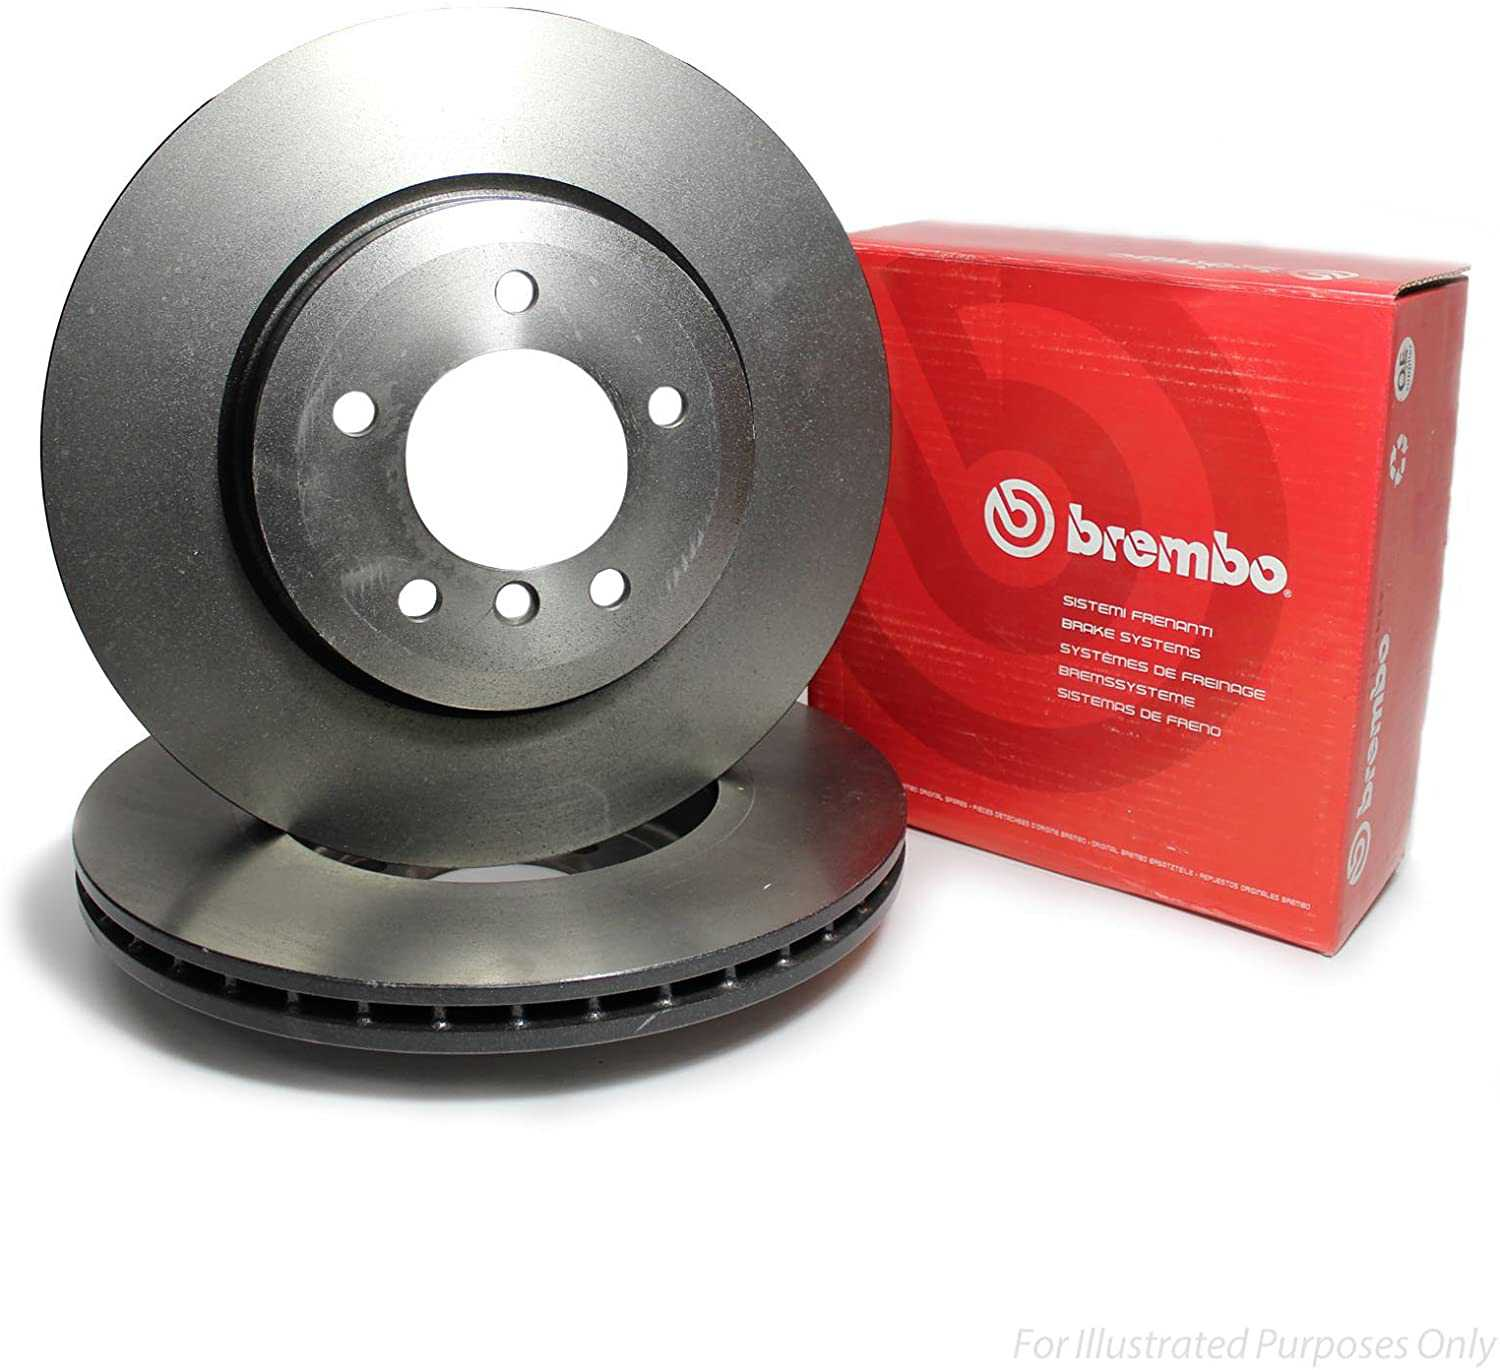 Front Brake Disk Kit For Nissan Sunny n16 2001-2011 Brembo